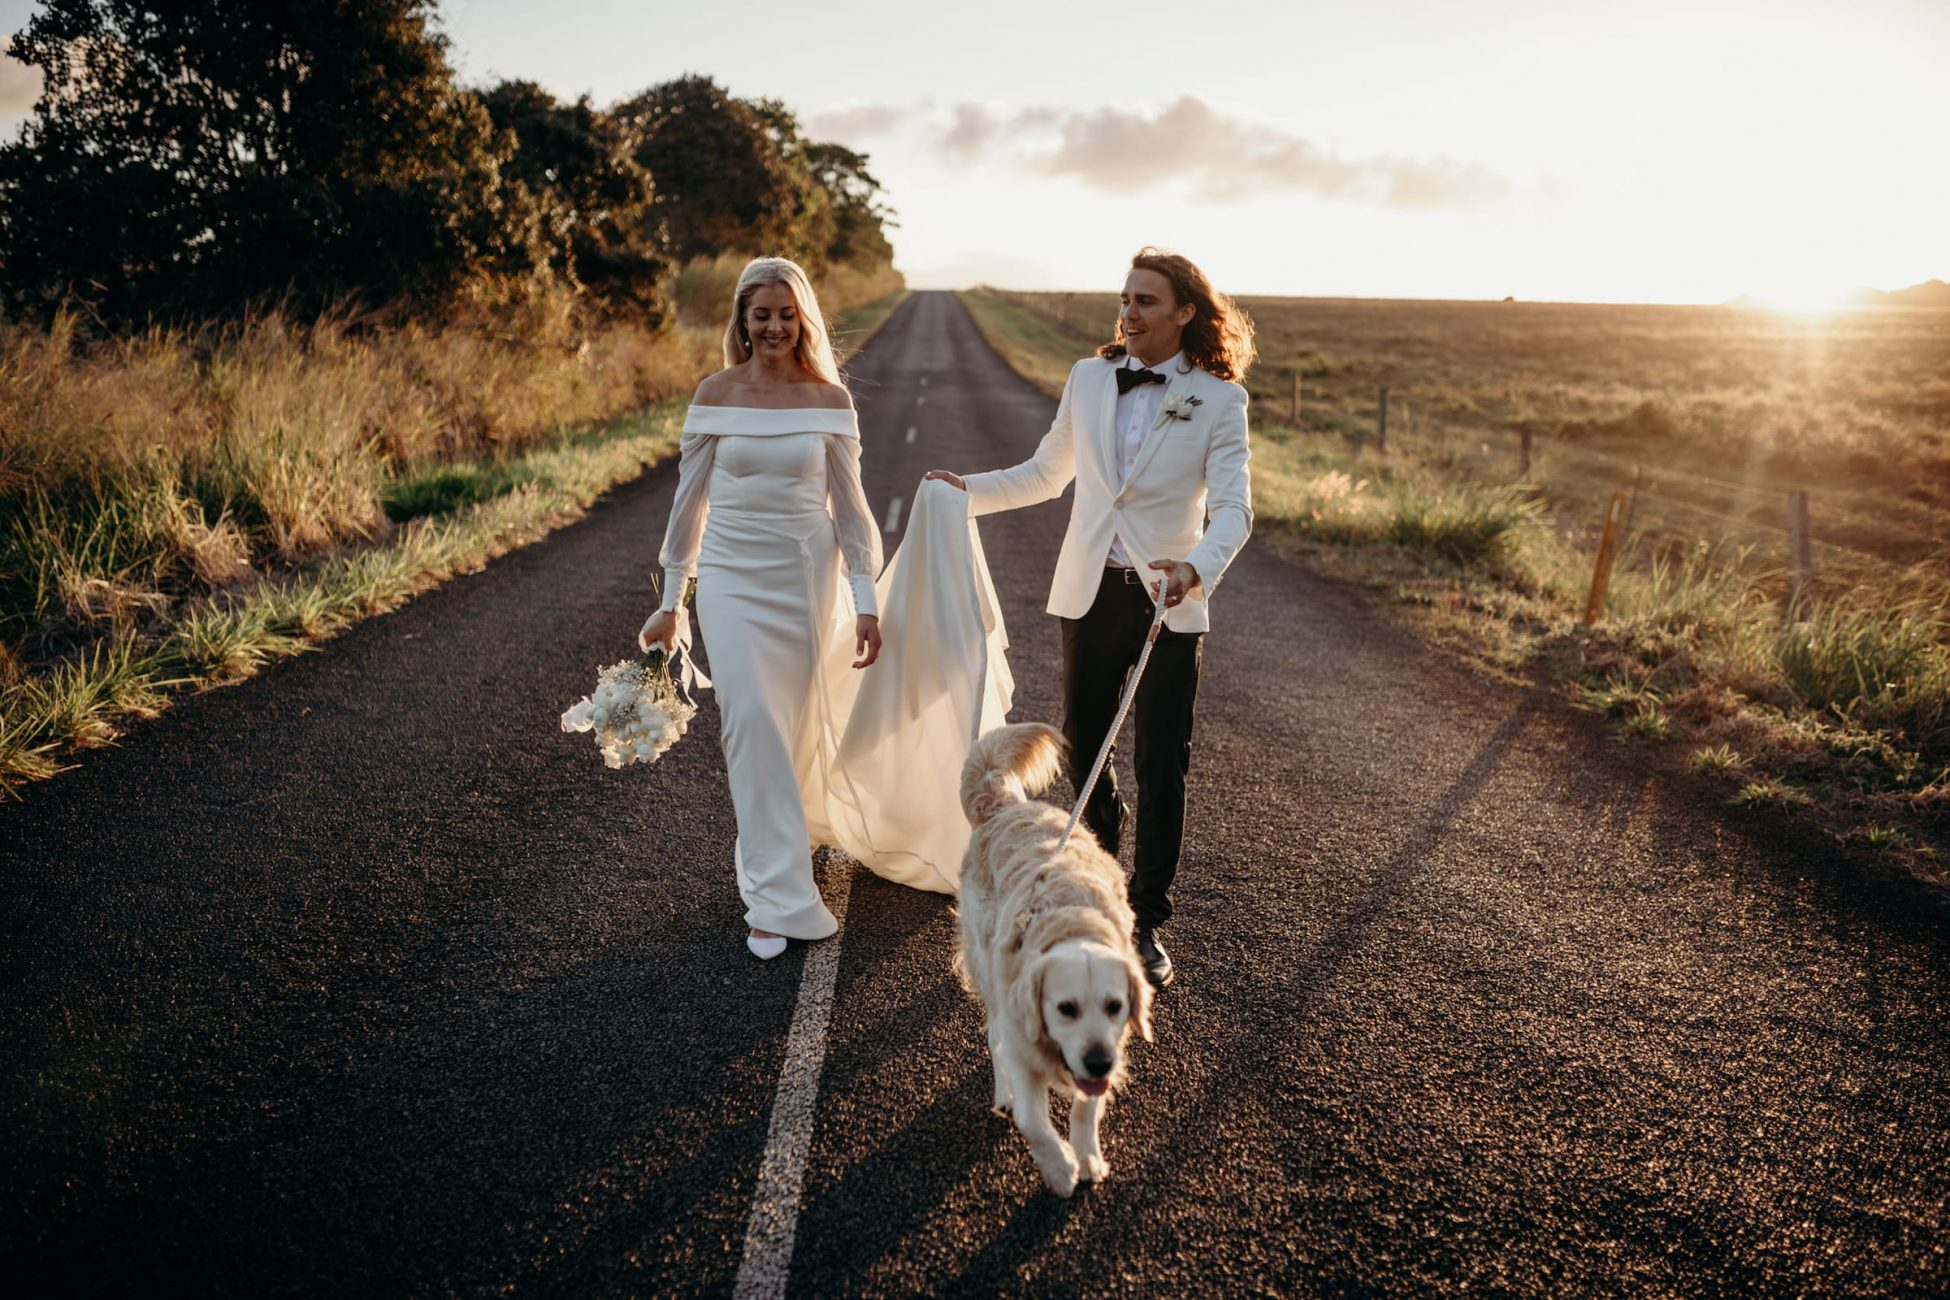 Tablelands Wedding photography, couple walking on a country road